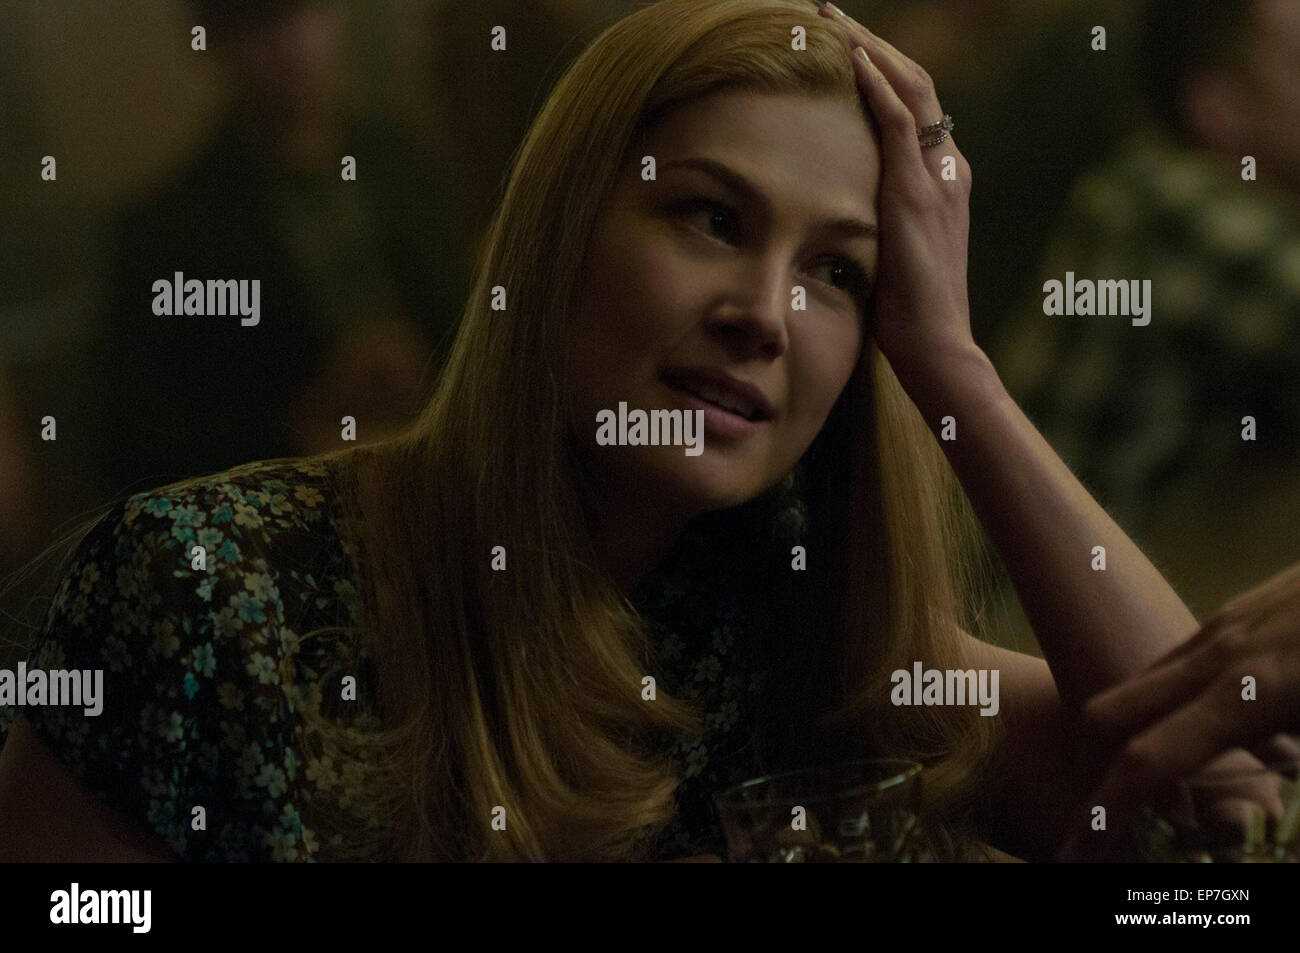 Gone Girl is a 2014 American psychological thriller film directed by David Fincher and adapted by Gillian Flynn - Stock Image